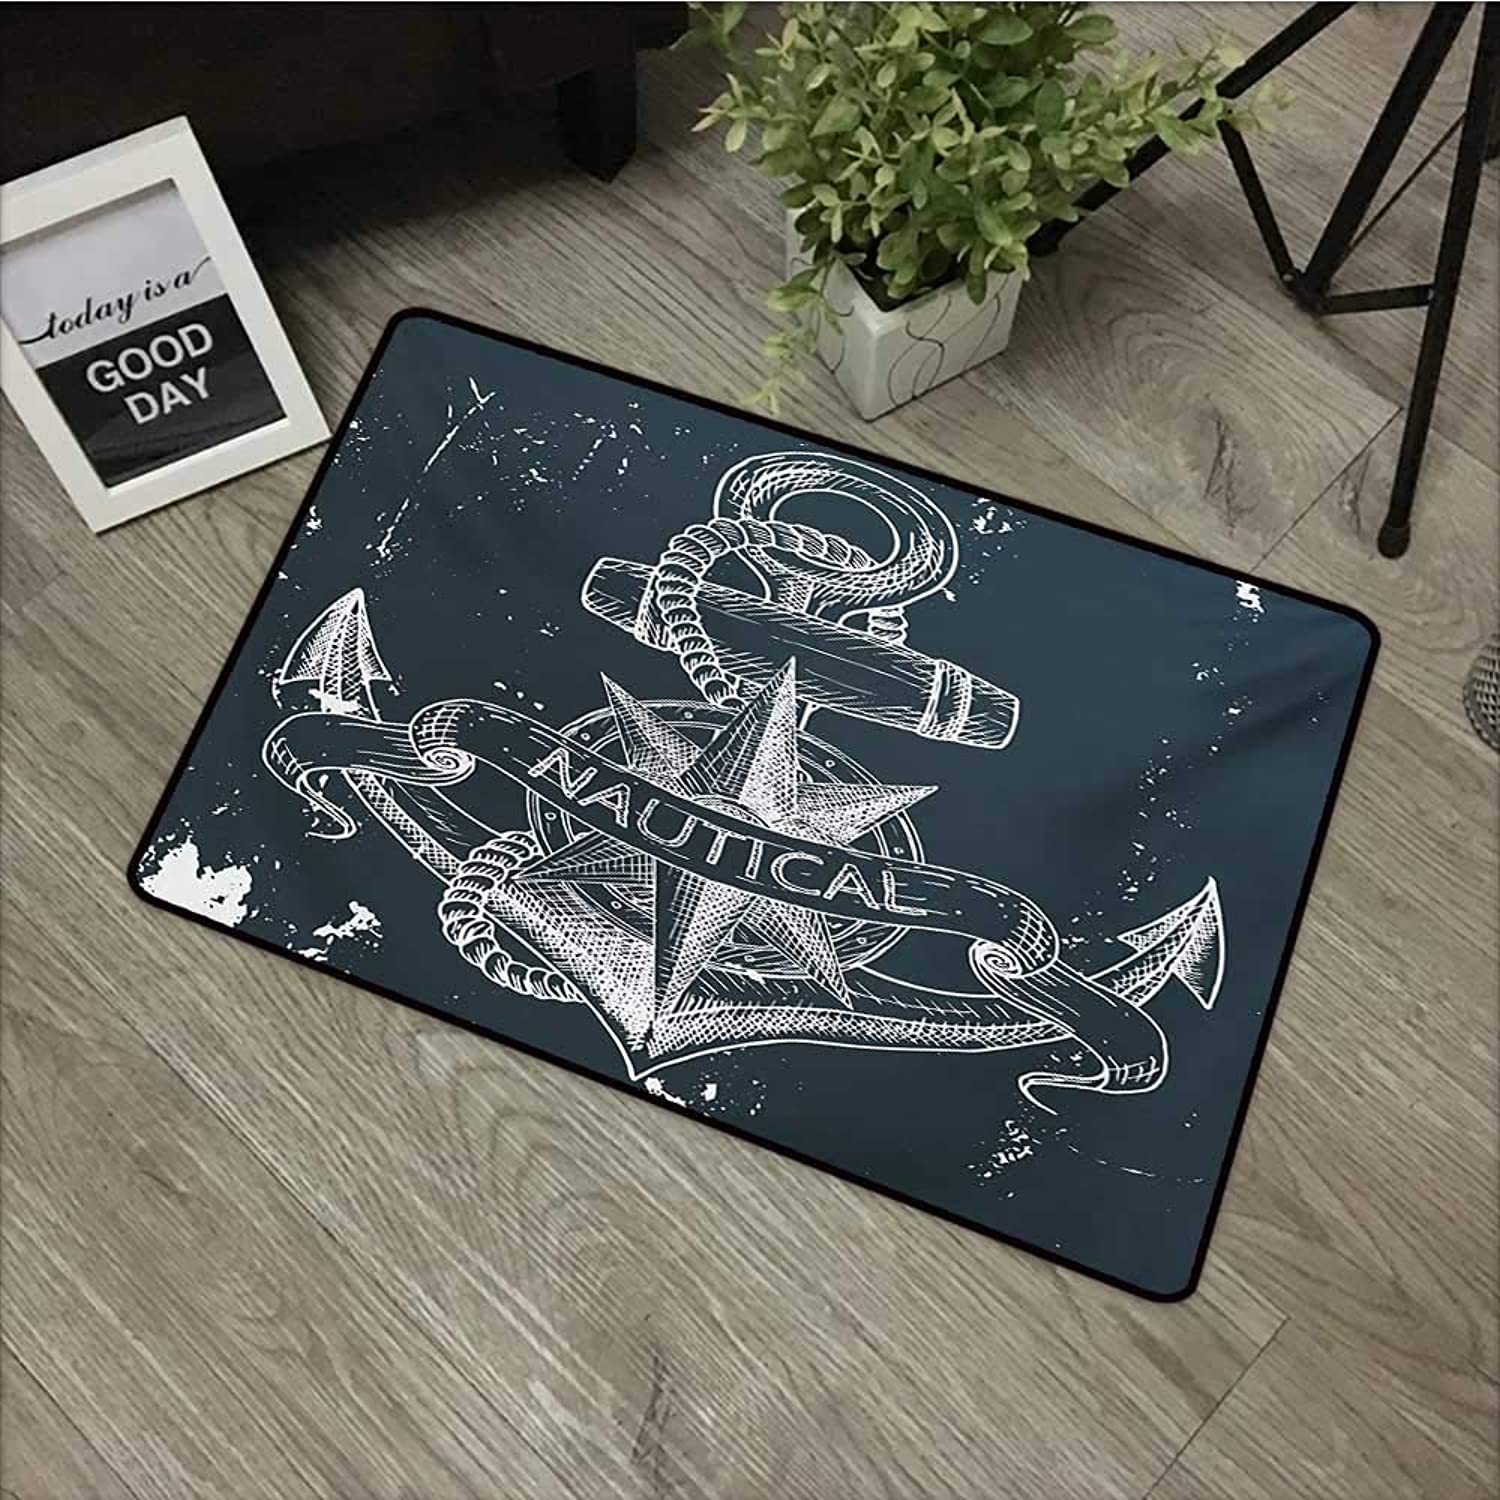 Meeting Room mat W35 x L59 INCH Marine,Nautical Knot Compass Anchor Pattern Sea World Ocean Life Grunge Illustration,Dark bluee White Non-Slip, with Non-Slip Backing,Non-Slip Door Mat Carpet